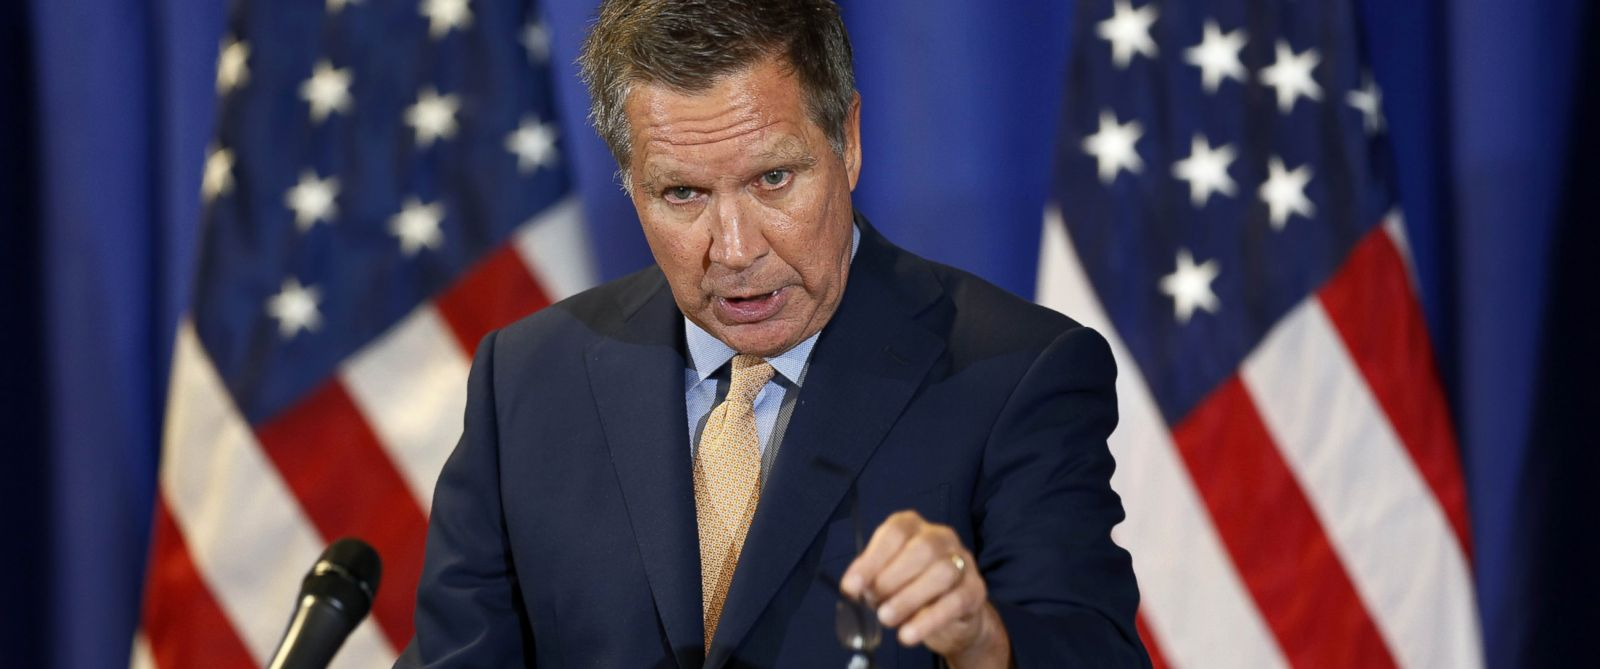 PHOTO: Republican presidential candidate, Ohio Gov. John Kasich on Oct. 15, 2015, in Nashua, N.H.